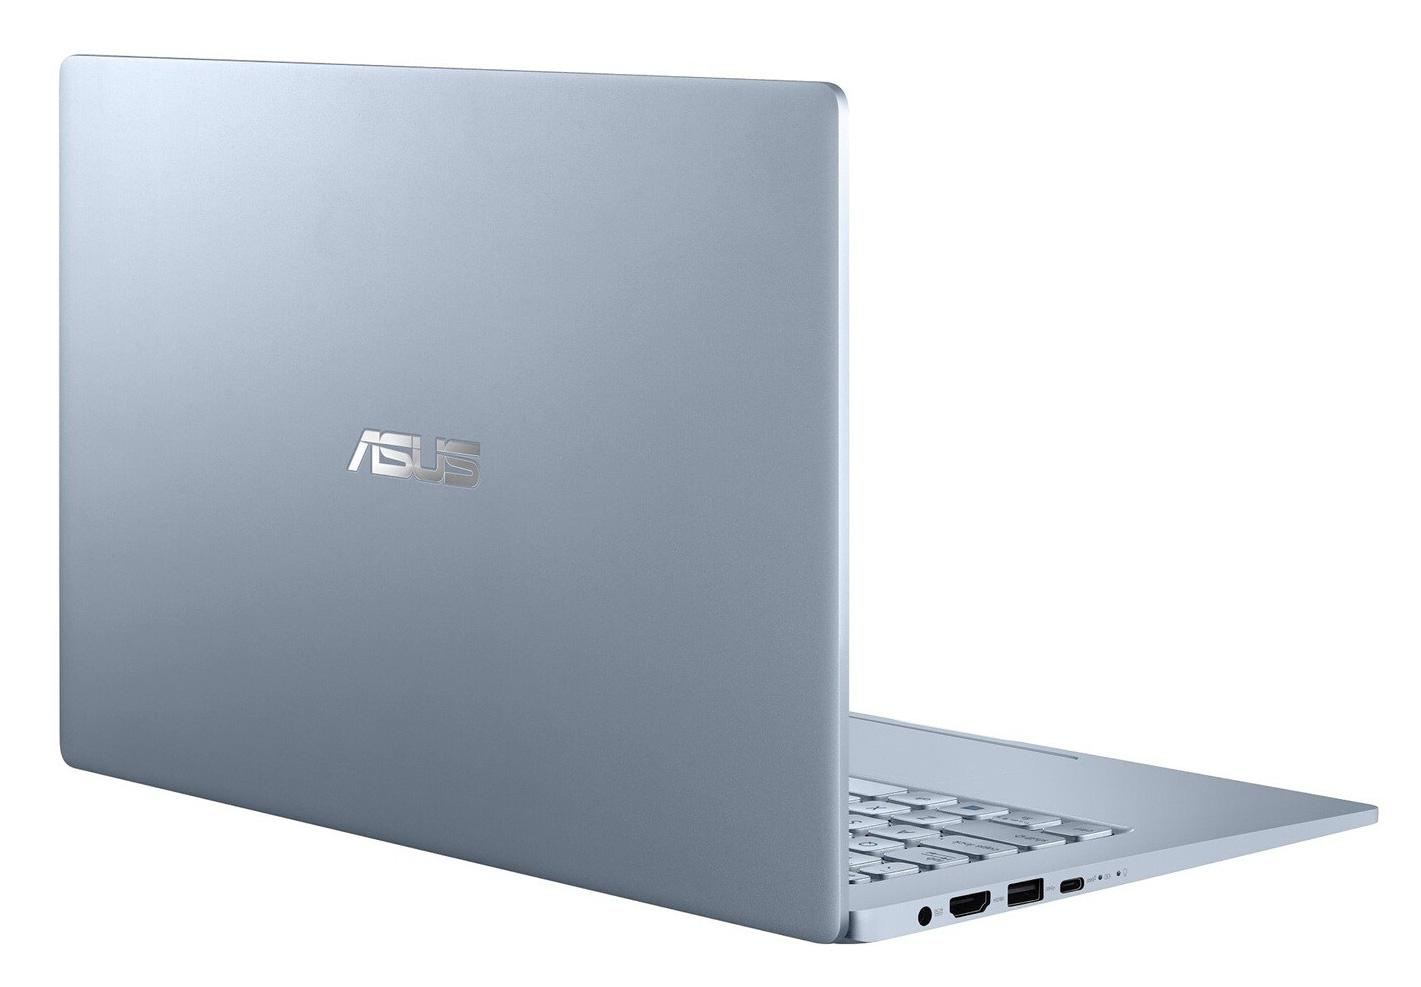 Ordinateur portable Asus VivoBook S403FA-EB116T Bleu Gris - photo 7